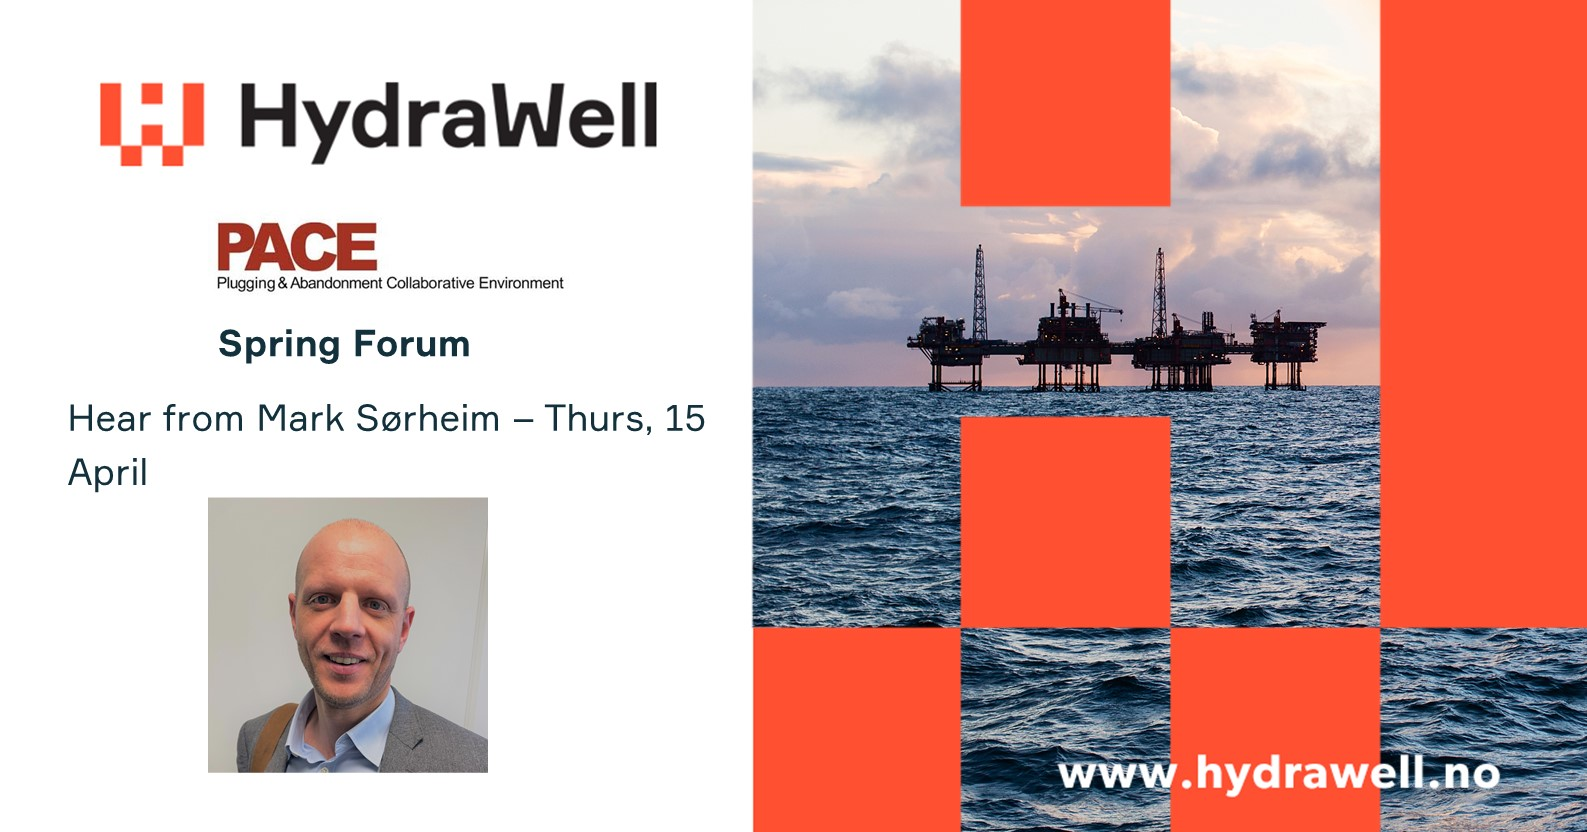 HydraWell's CEO, Mark Sørheim to present at PACE Forum